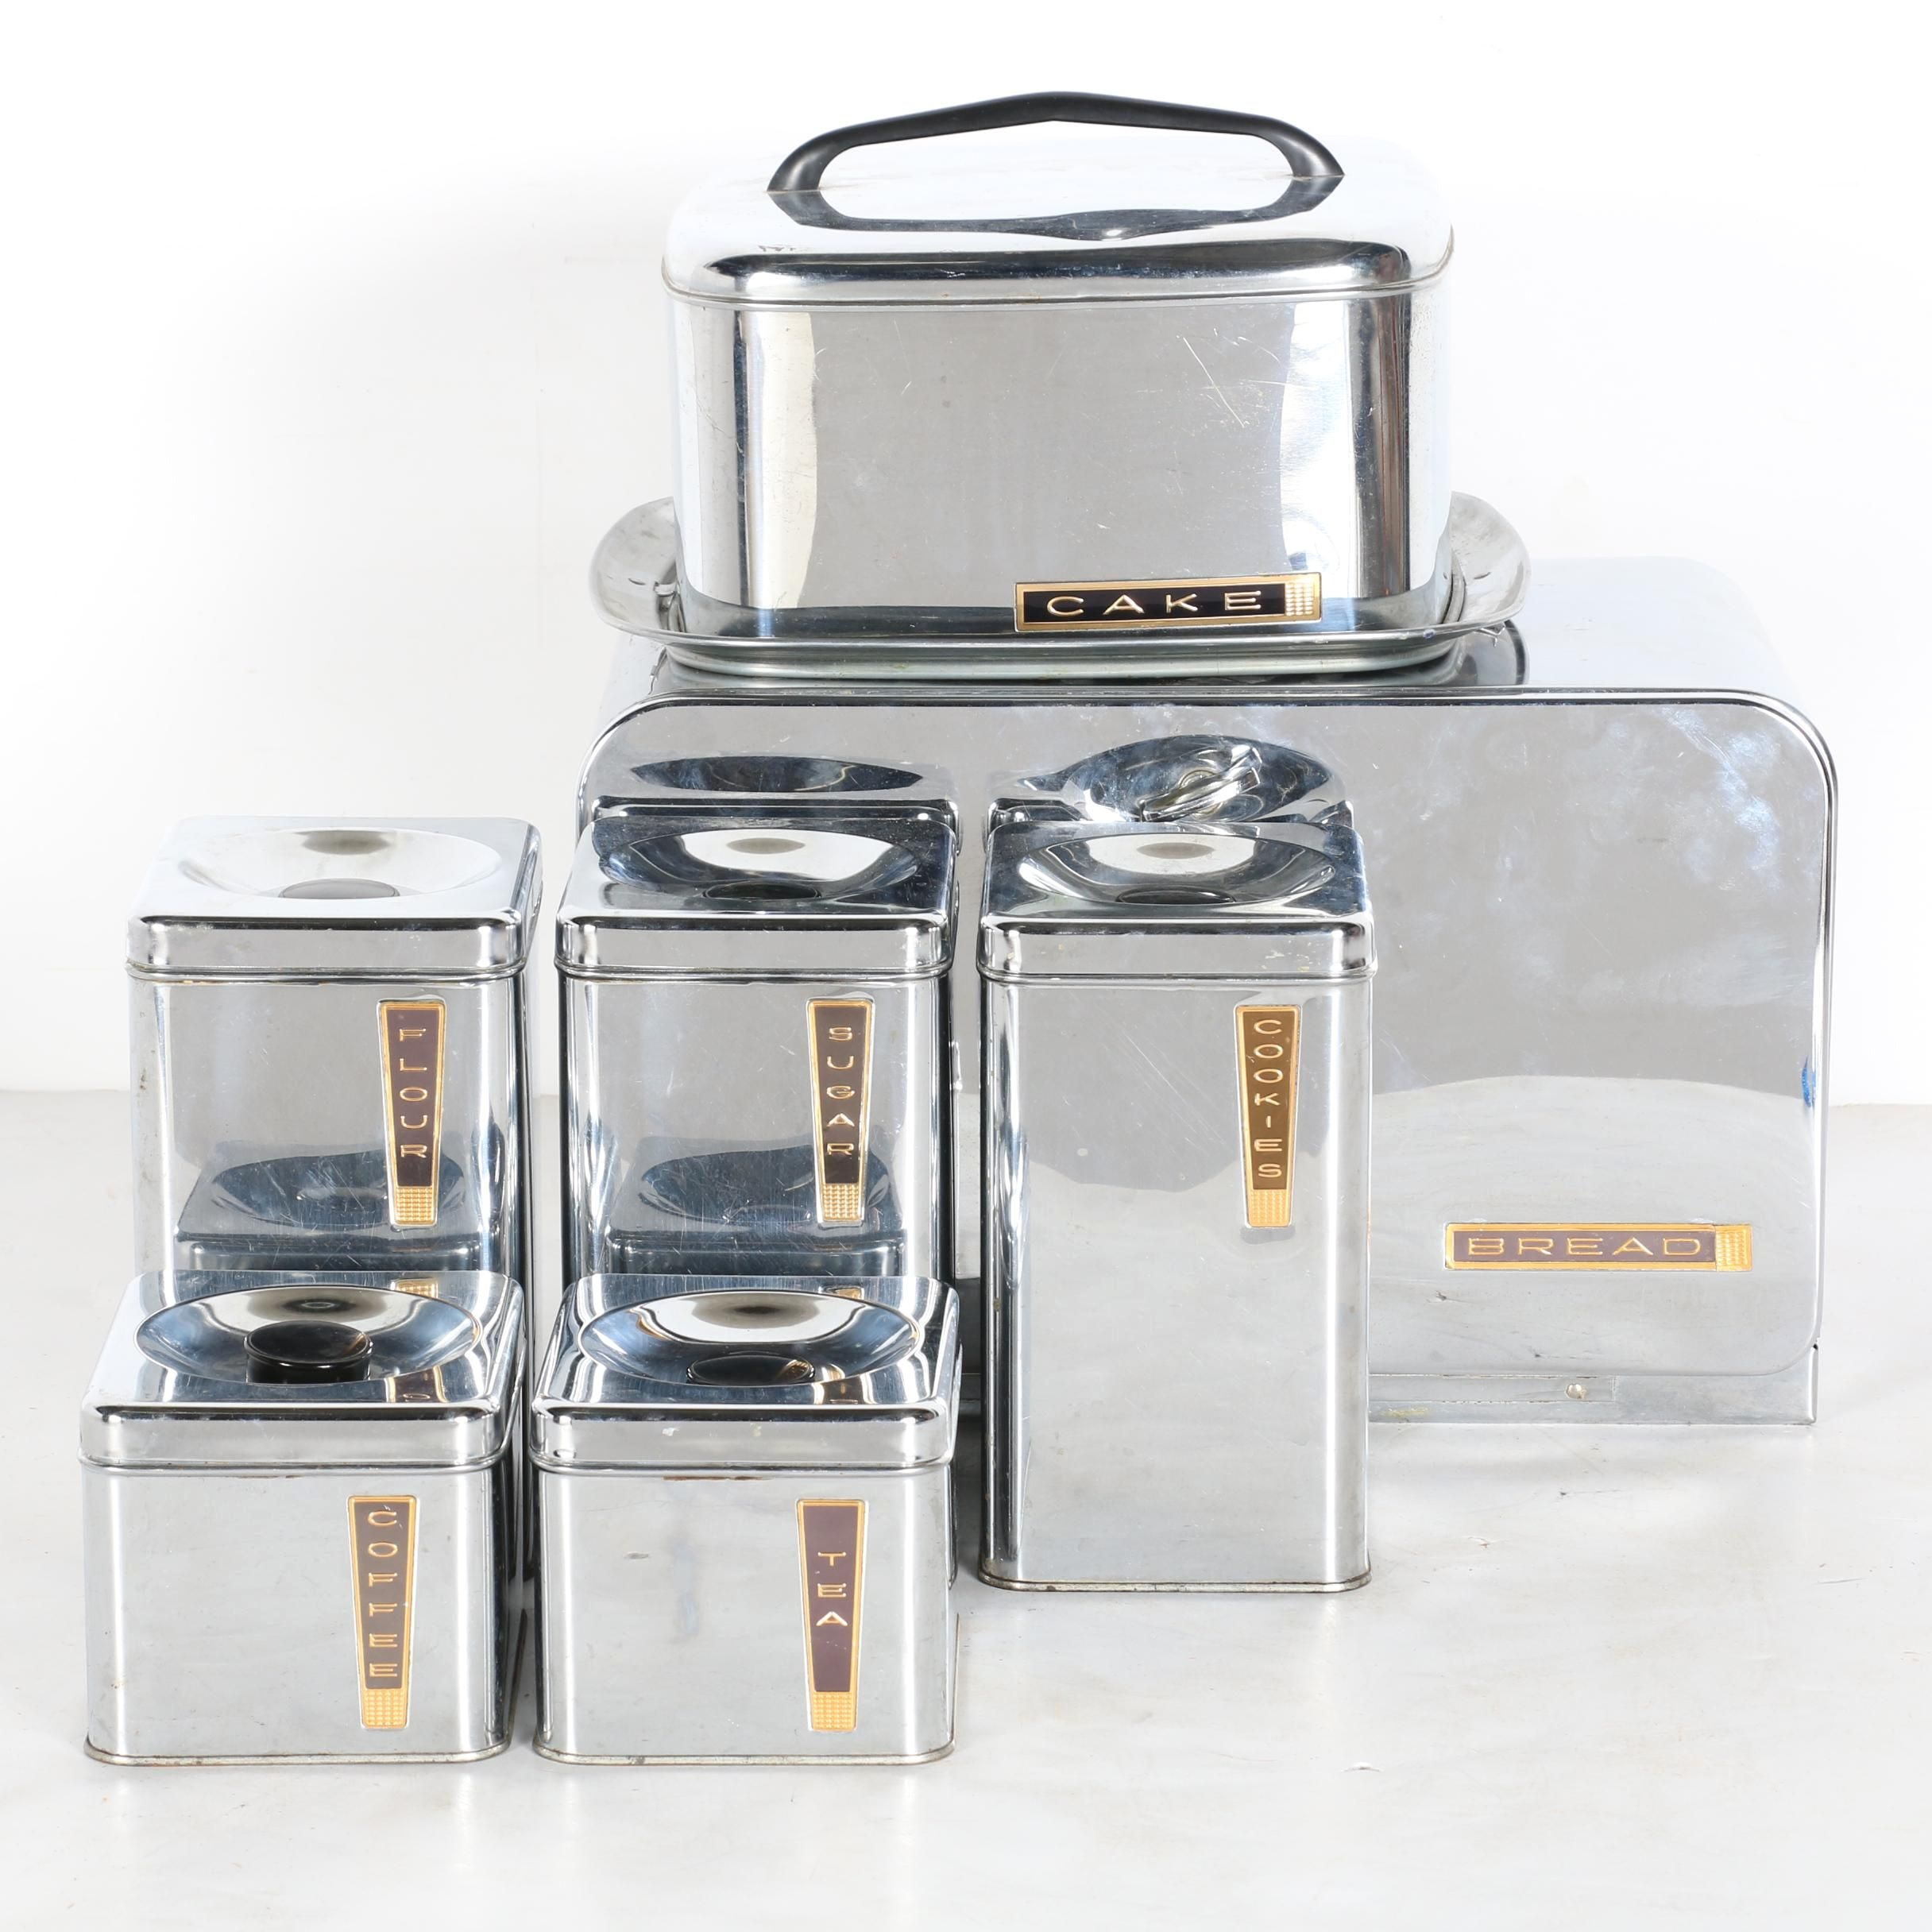 Vintage Lincoln Beauty Ware Aluminum Canister Set